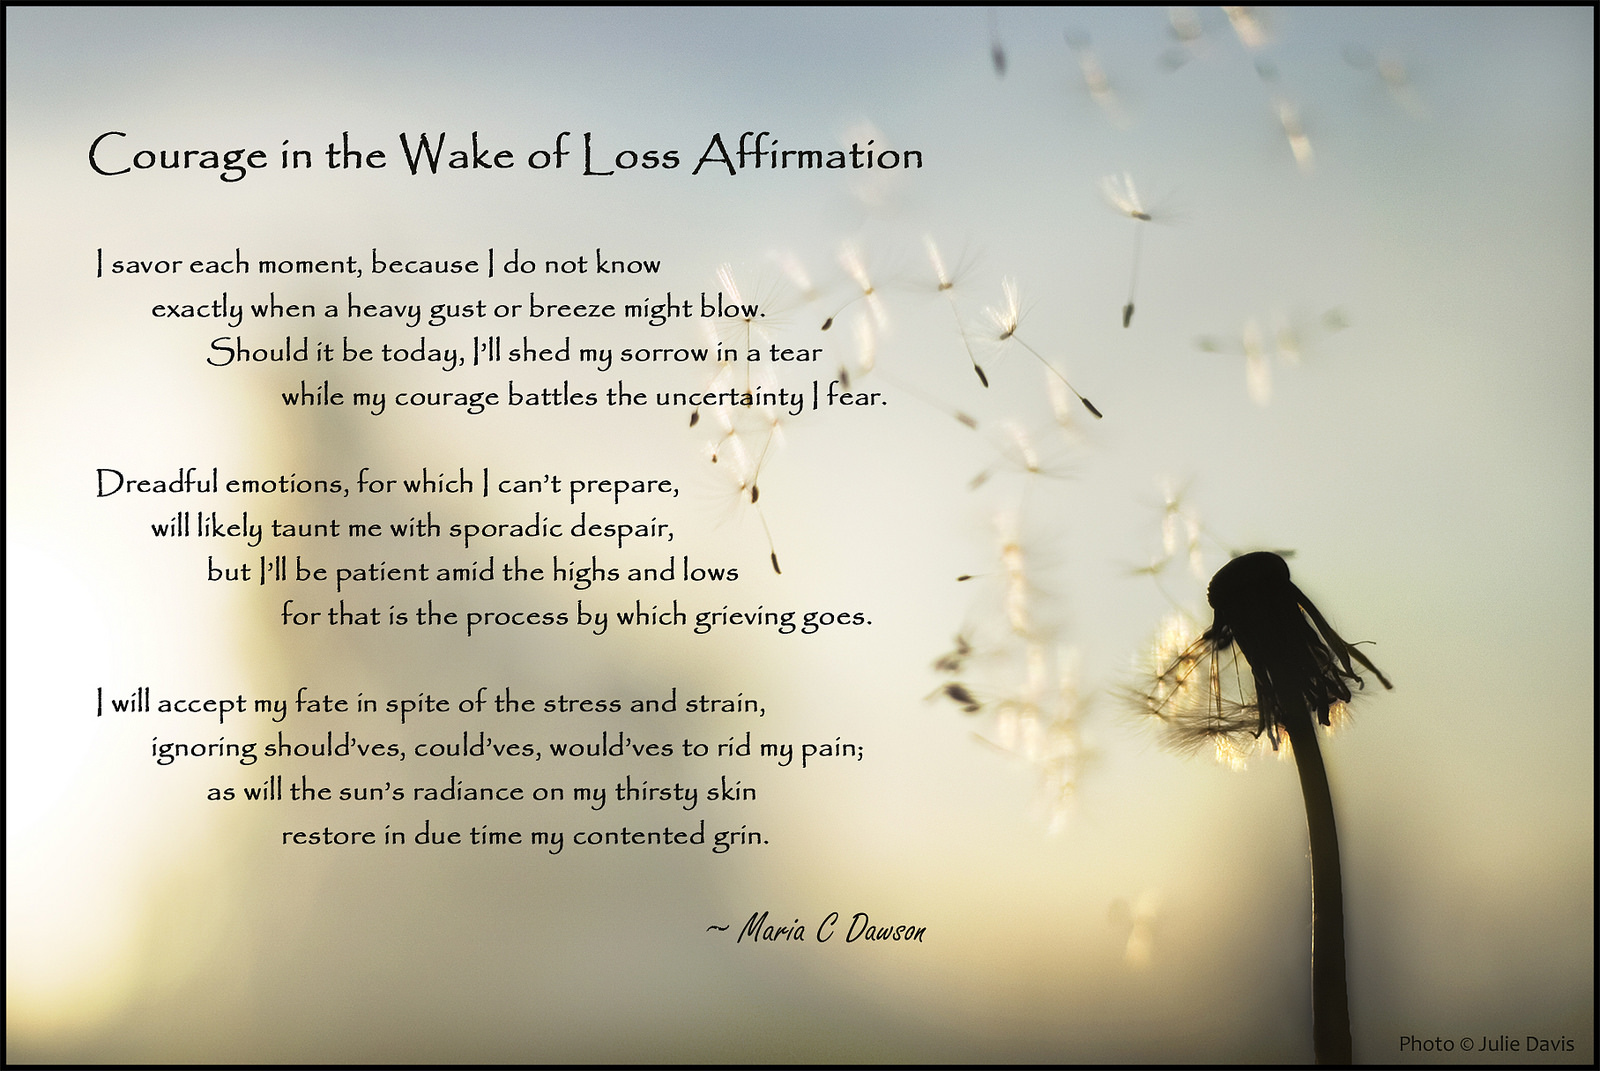 wake of loss affirmation